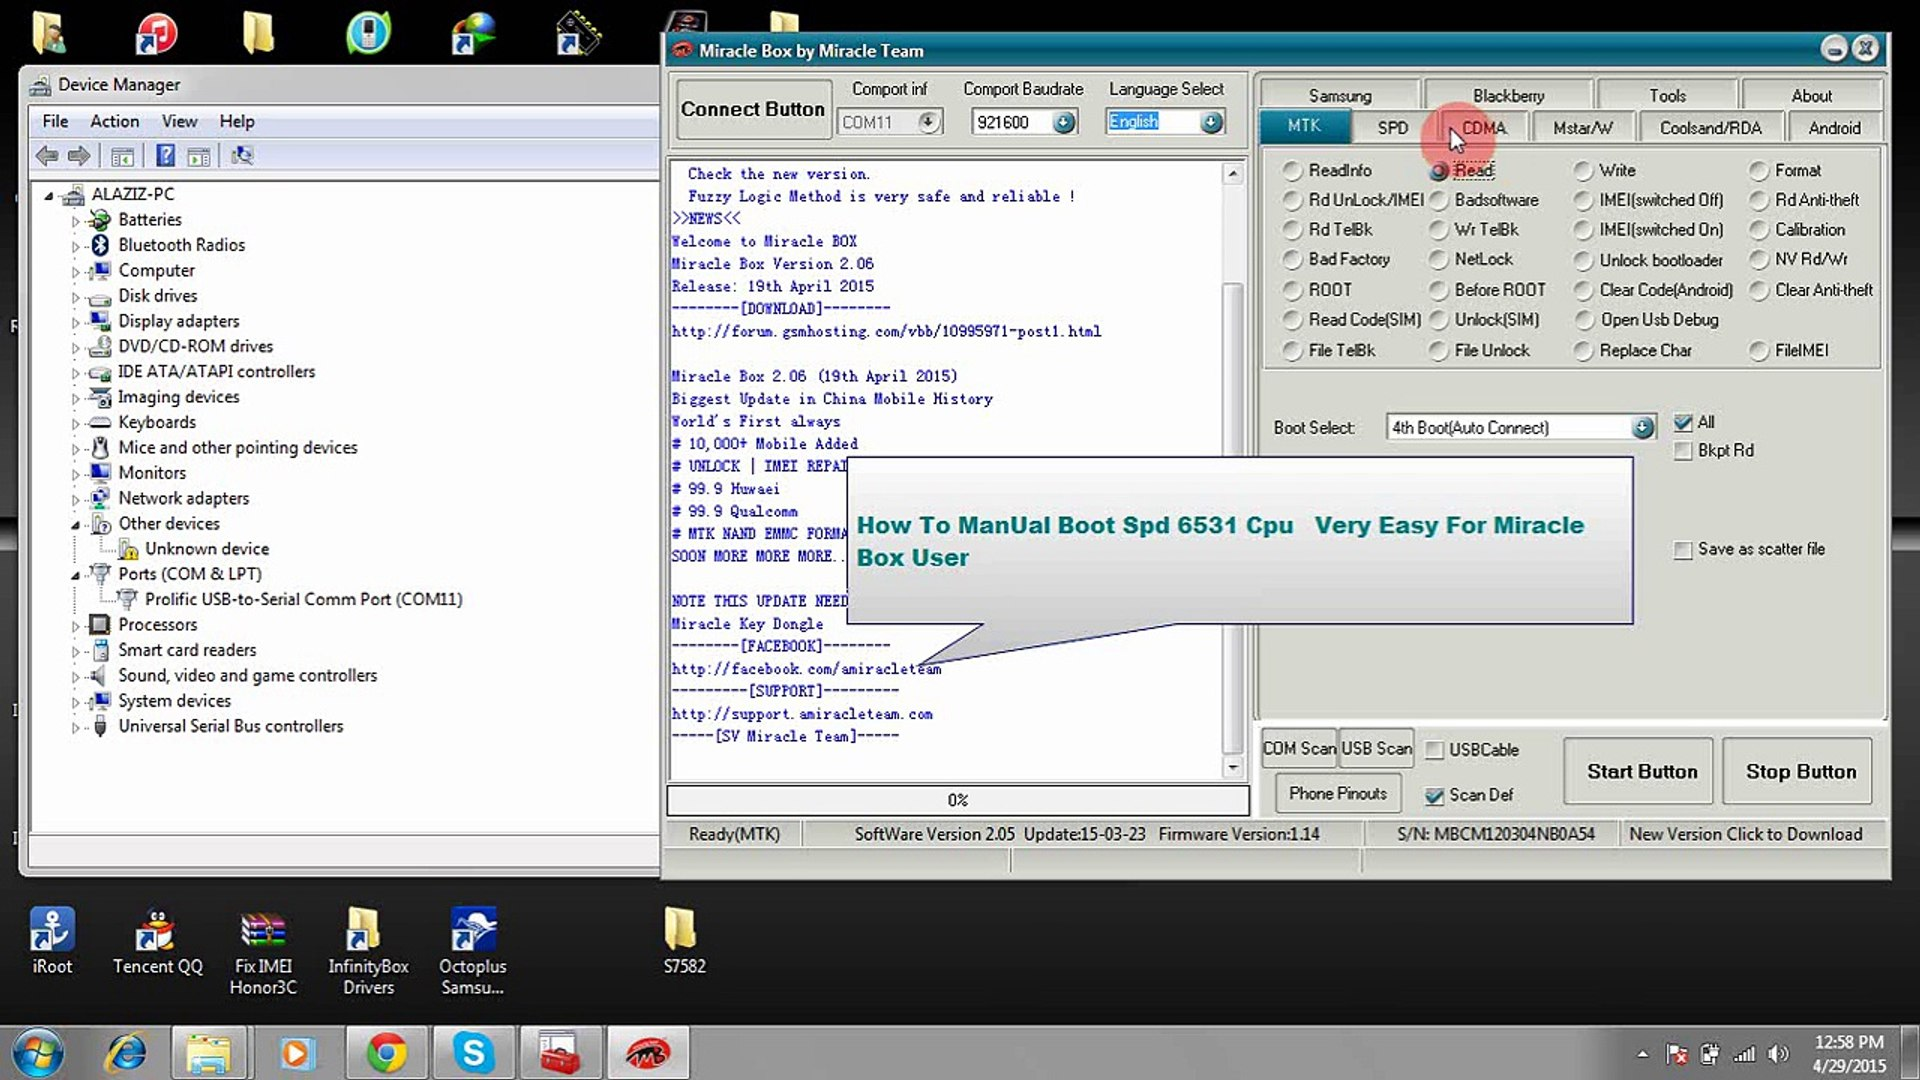 how to manual boot spd 6531 for very easy for miracle user